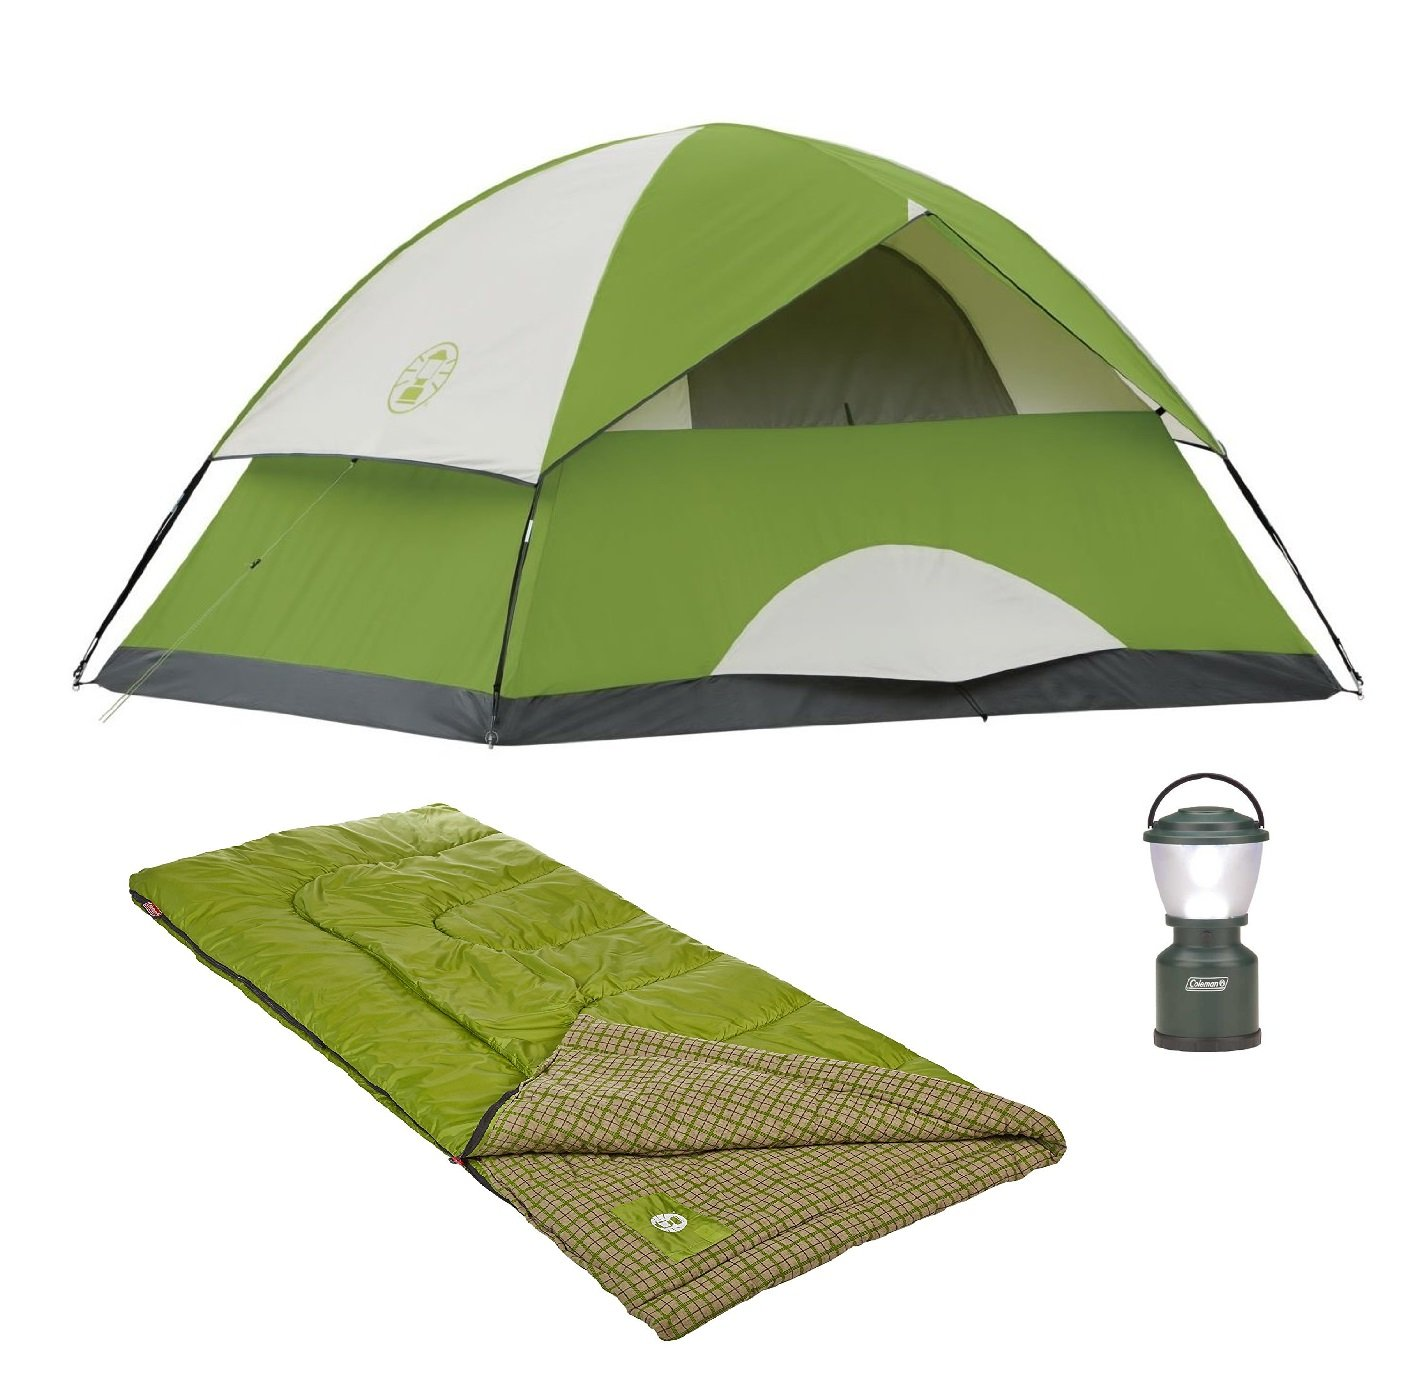 Bundle-of-3-includes-Sundome-4-Person-Tent-Cool-Weather-Adult-Sleeping-Bag-and-LED-Camp-Lantern